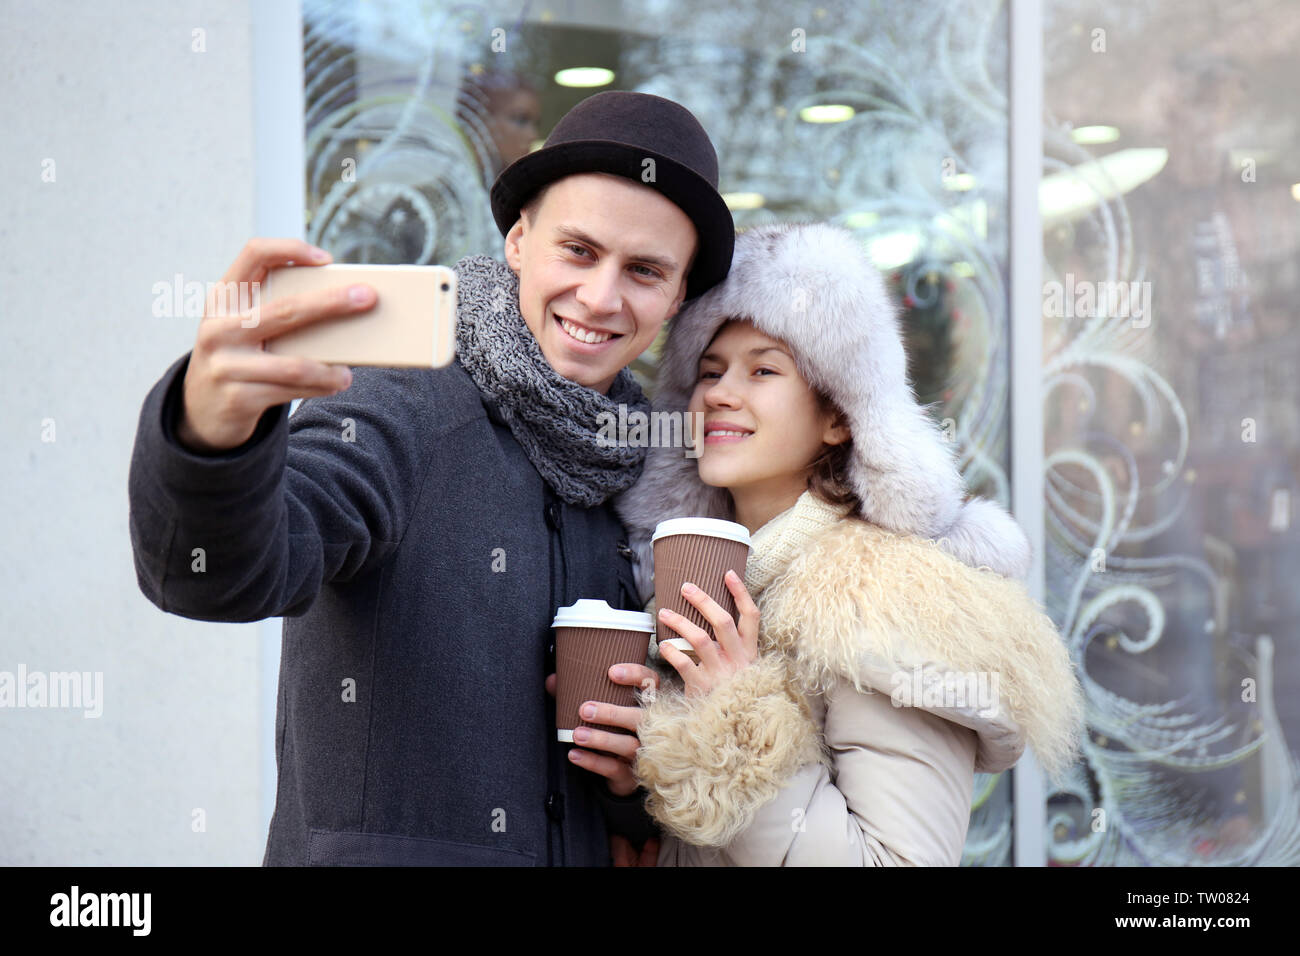 Young couple taking selfie on the street - Stock Image